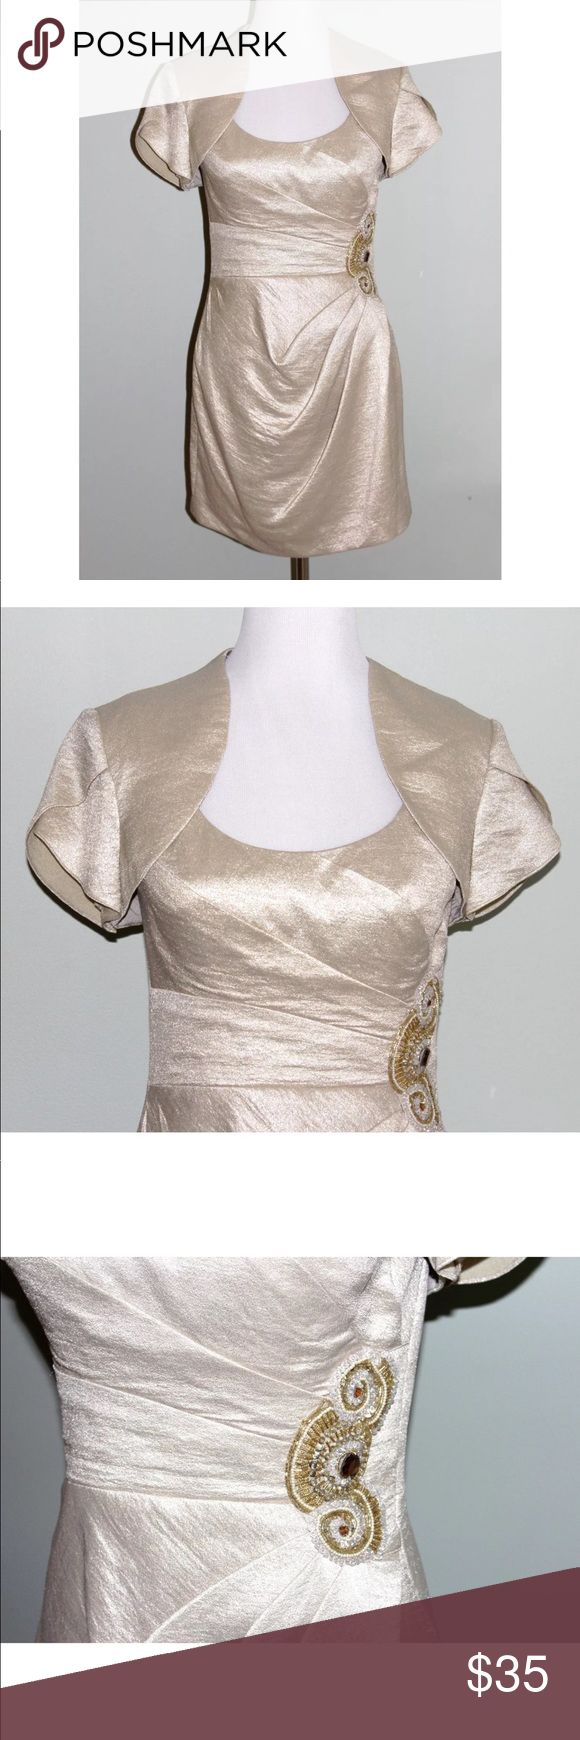 """Adrianna Papell Occasion Dress Size 8 Gold 2 Pc ADRIANNA PAPELL OCCASIONS Dress with Removable Jacket Excellent Pre-Owned Condition Size 8 (34"""" Length, 36"""" Bust, 30"""" Waist, 38"""" Hips) Gold Shimmer Metallic with Beaded Embellishment at Waist Rear Zipper, Fully Lined, Gorgeous! Adrianna Papell Dresses Wedding"""